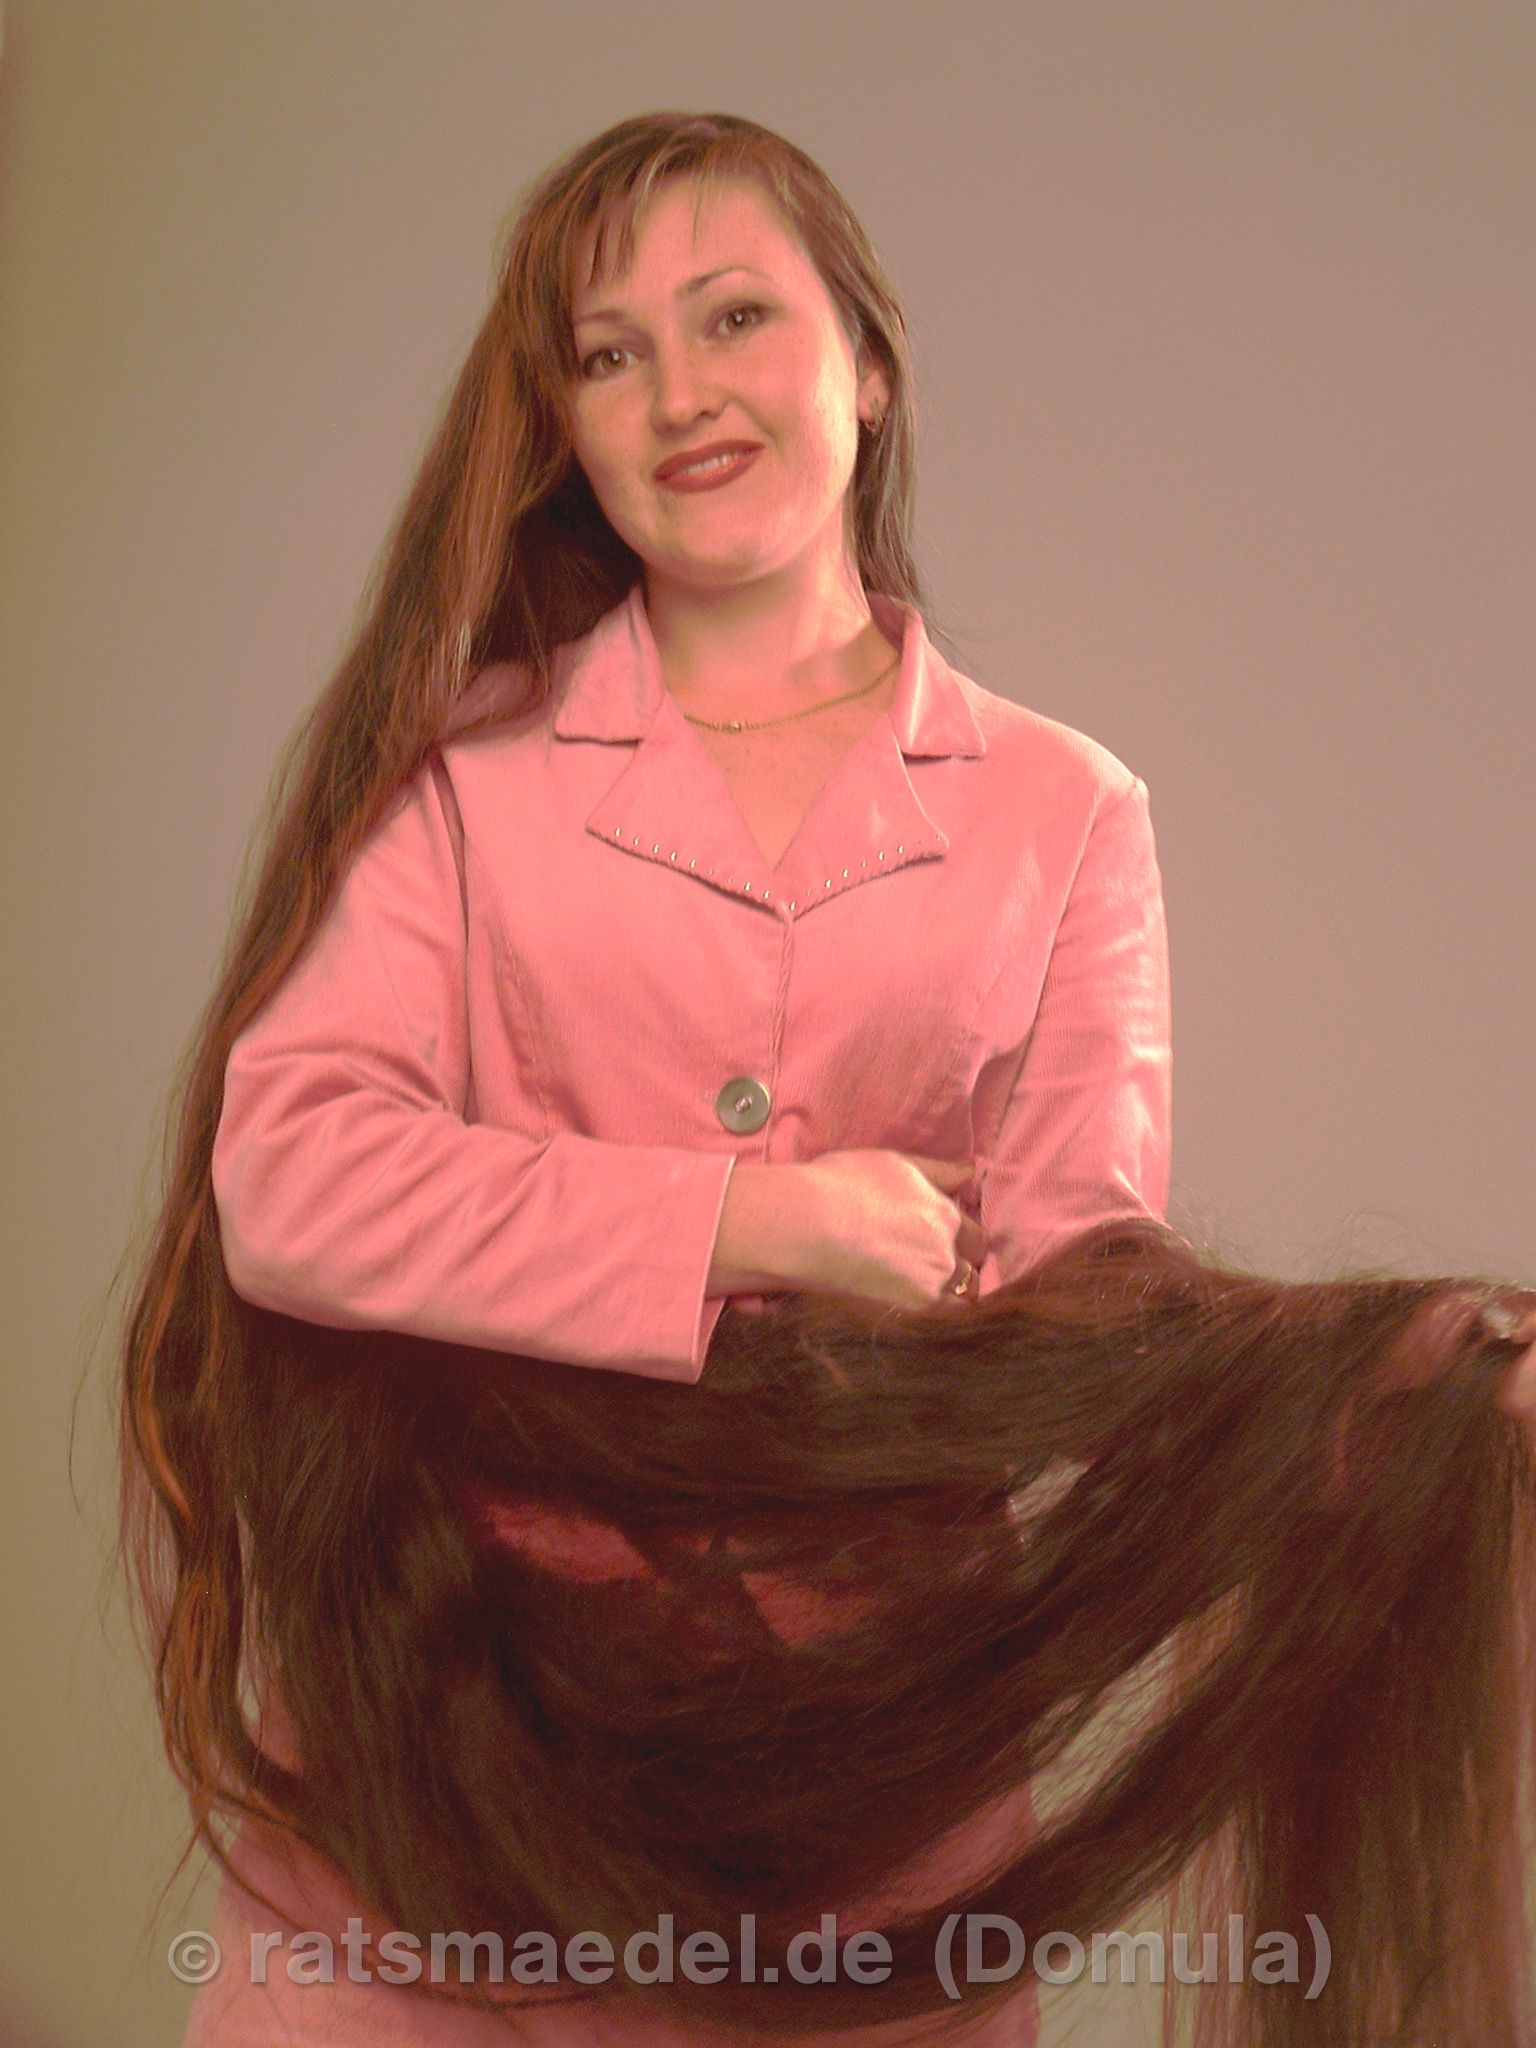 Coiffure Cheveux Long De Tous Les Jours Torsten Domula Photos Long Hair Ankles And Longer 1